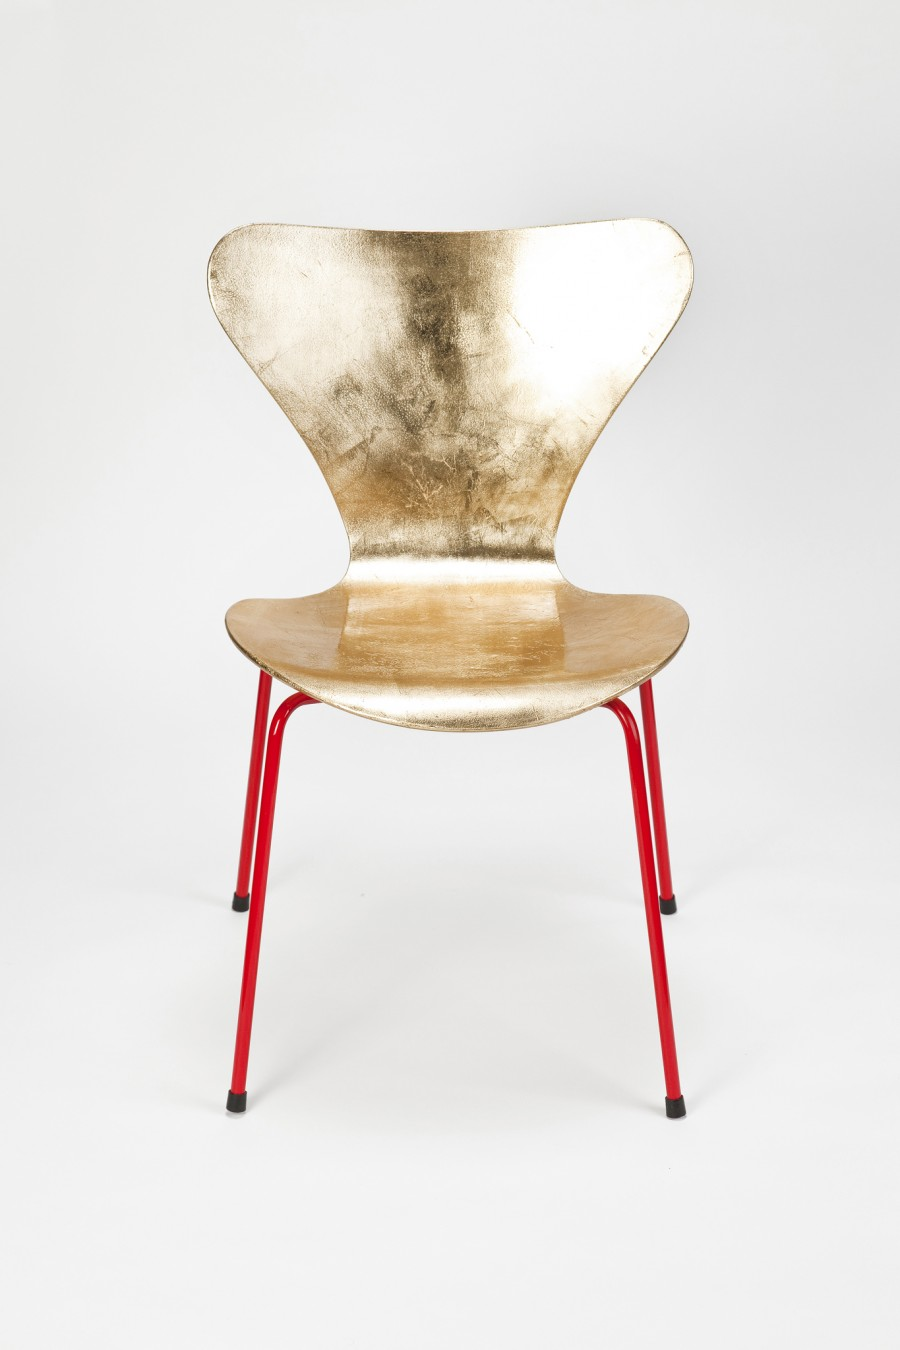 Eames and Jacobsen Go Goldy Gold by Reha Okay - on flodeau.com 013